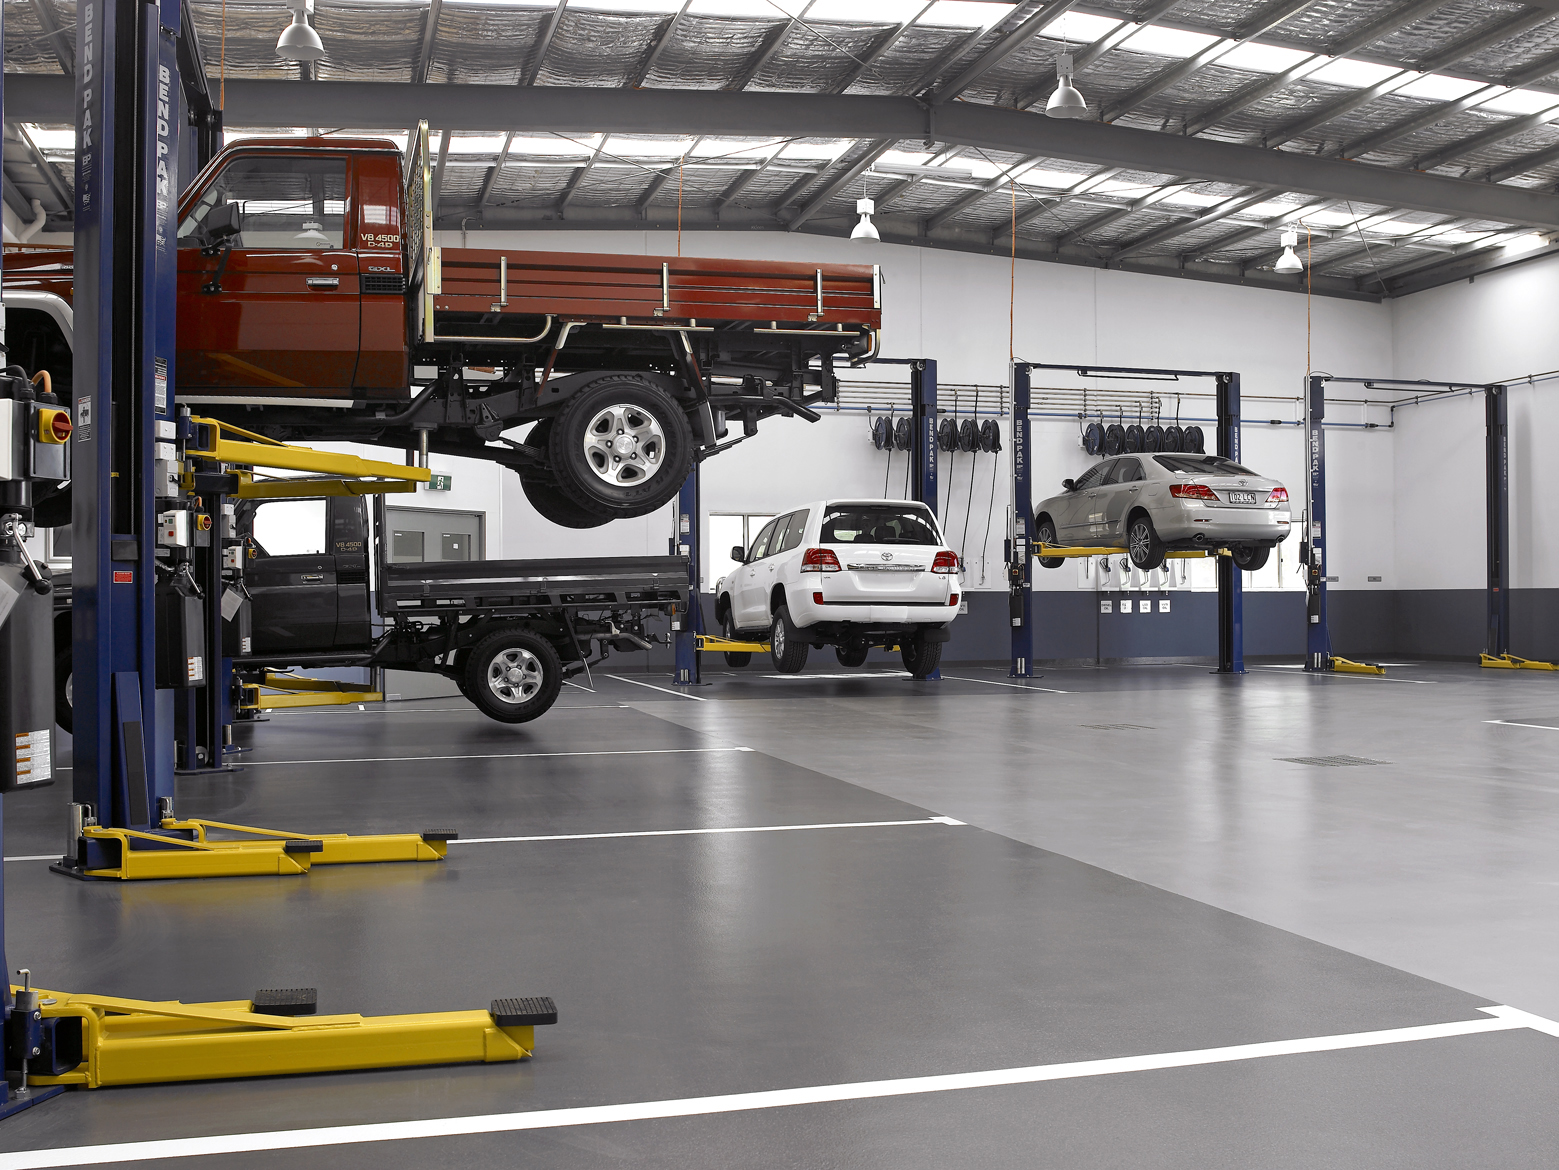 Garage Car Lift Images Bendpak Wins Important Naspo Contract Bendpak Blog